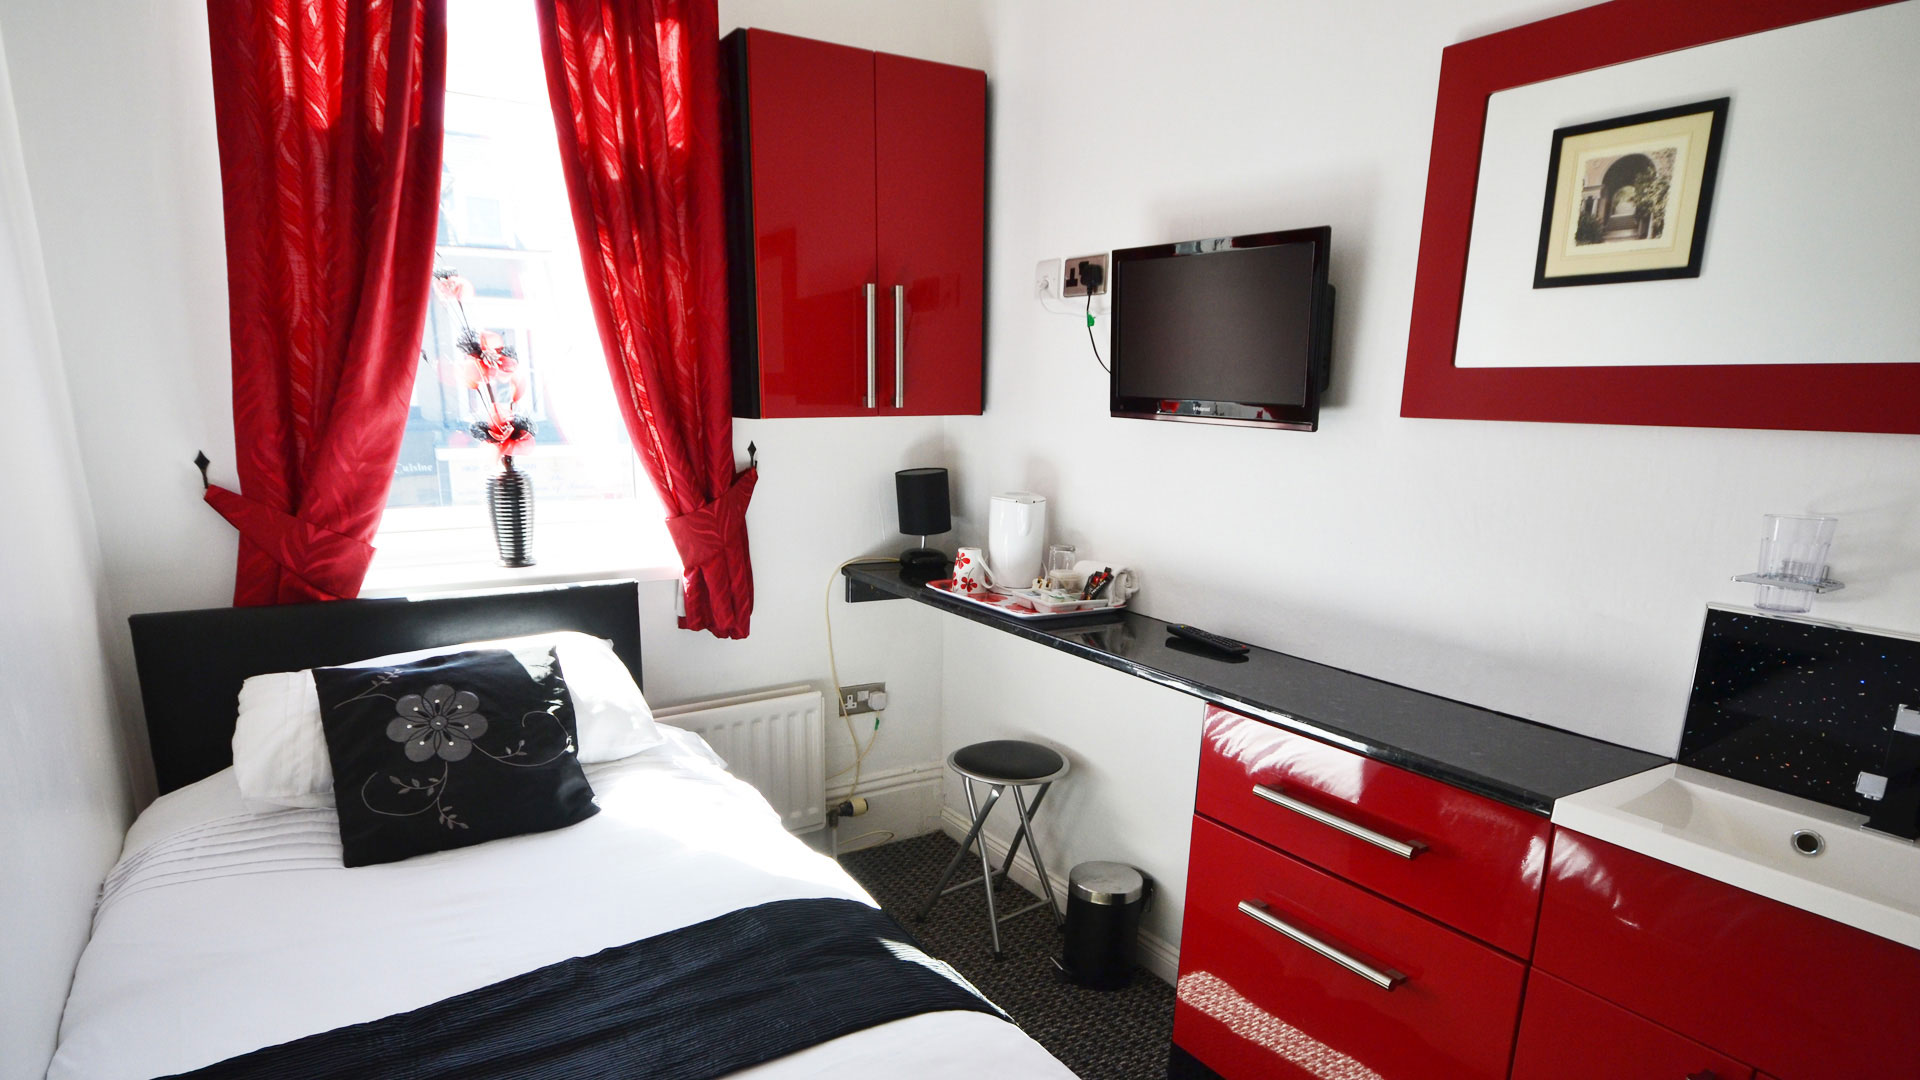 Single room on the first floor with own private shower, overlooking the free parking bays at the front of the Guest House.